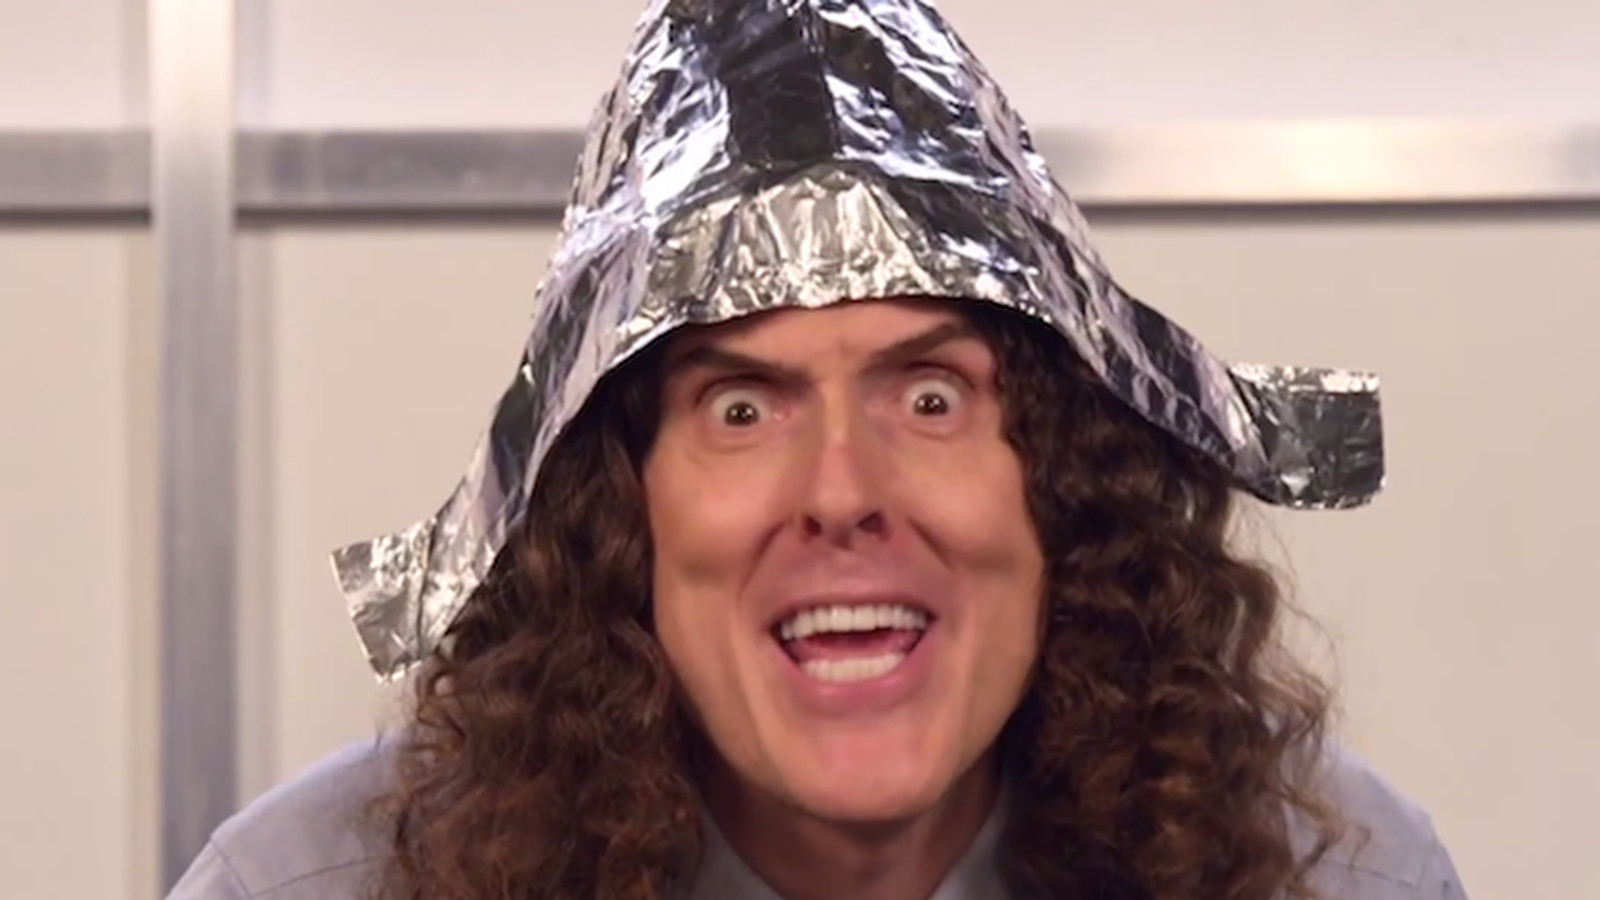 Weird Al rants about the Illuminati in parody of Lorde's 'Royals' - The  Verge